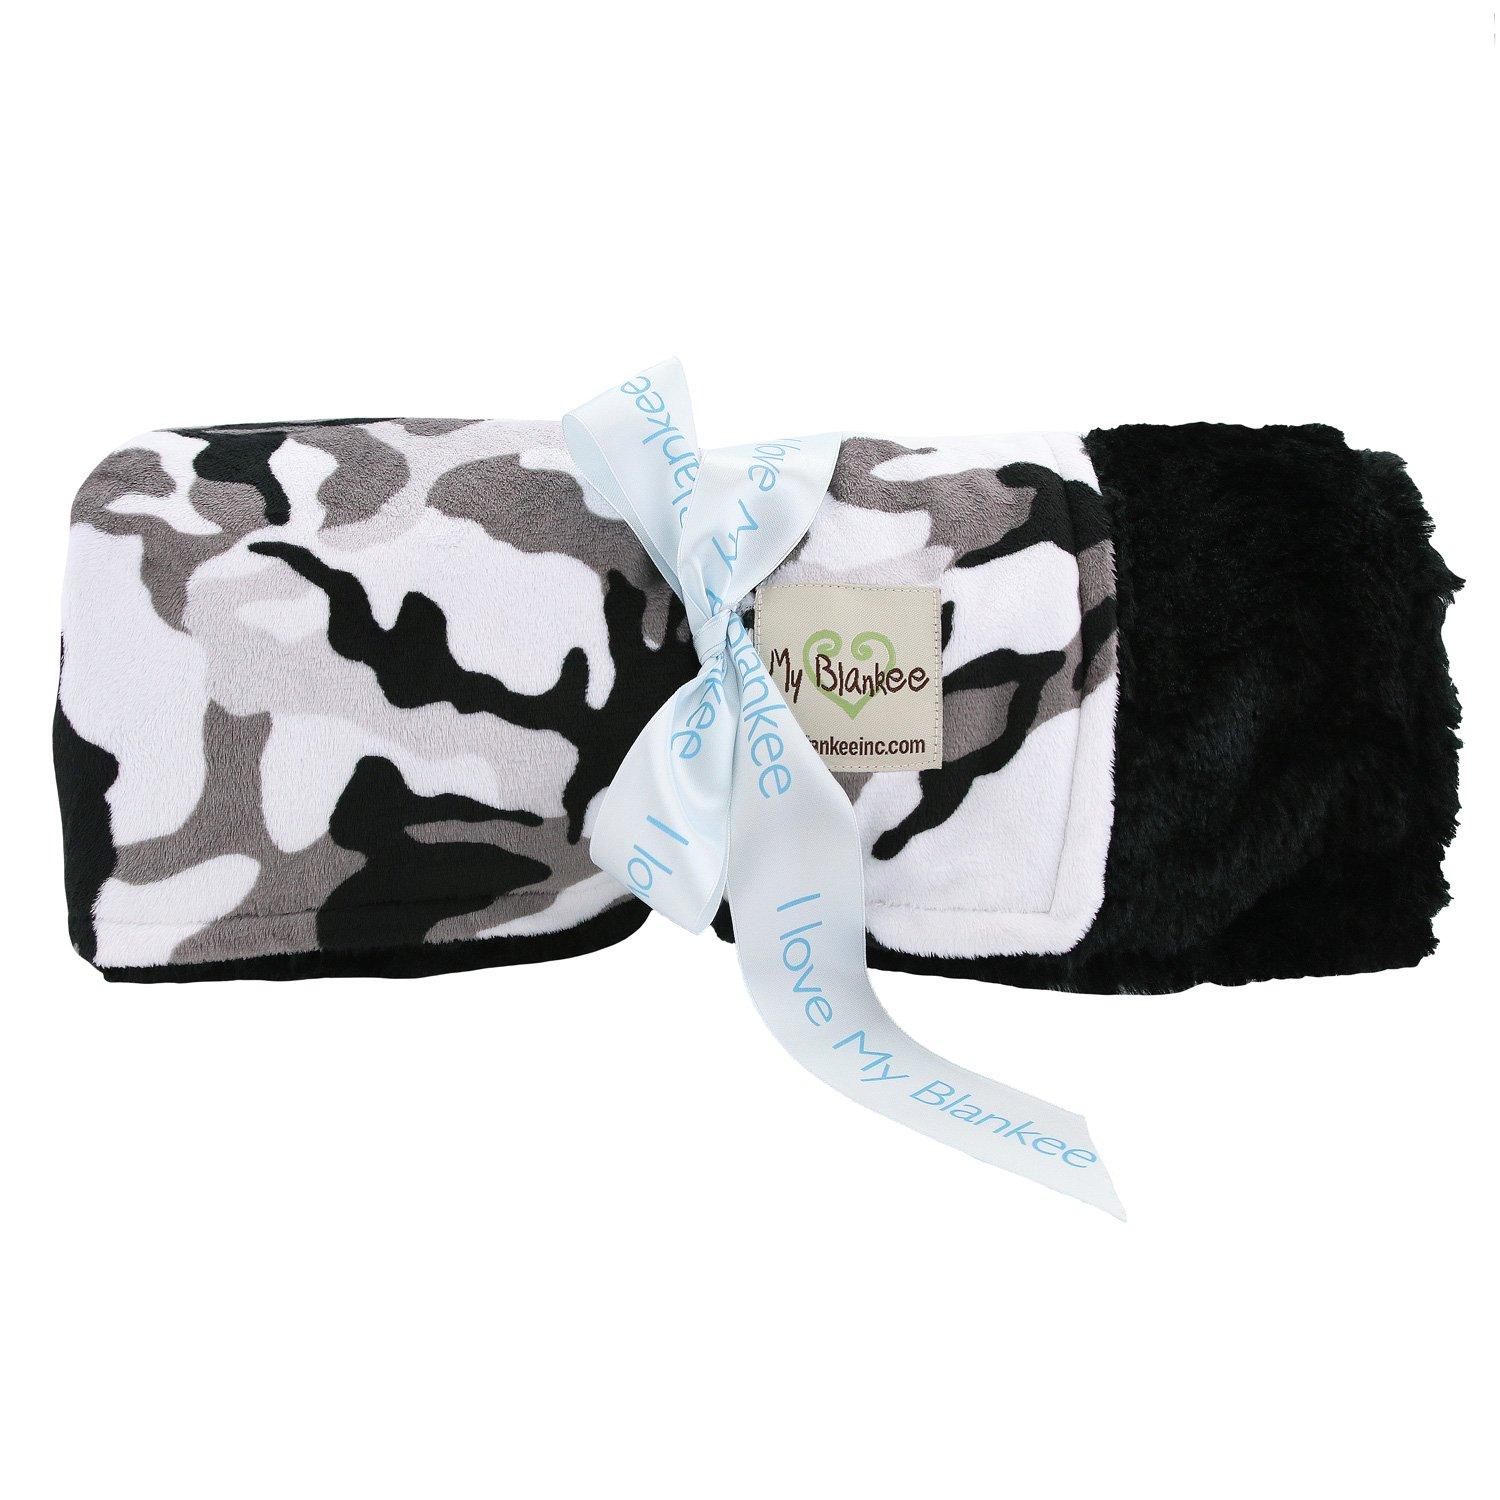 My Blankee Winter Camouflage with Luxe Back Black Throw Blanket, 52'' x 60''